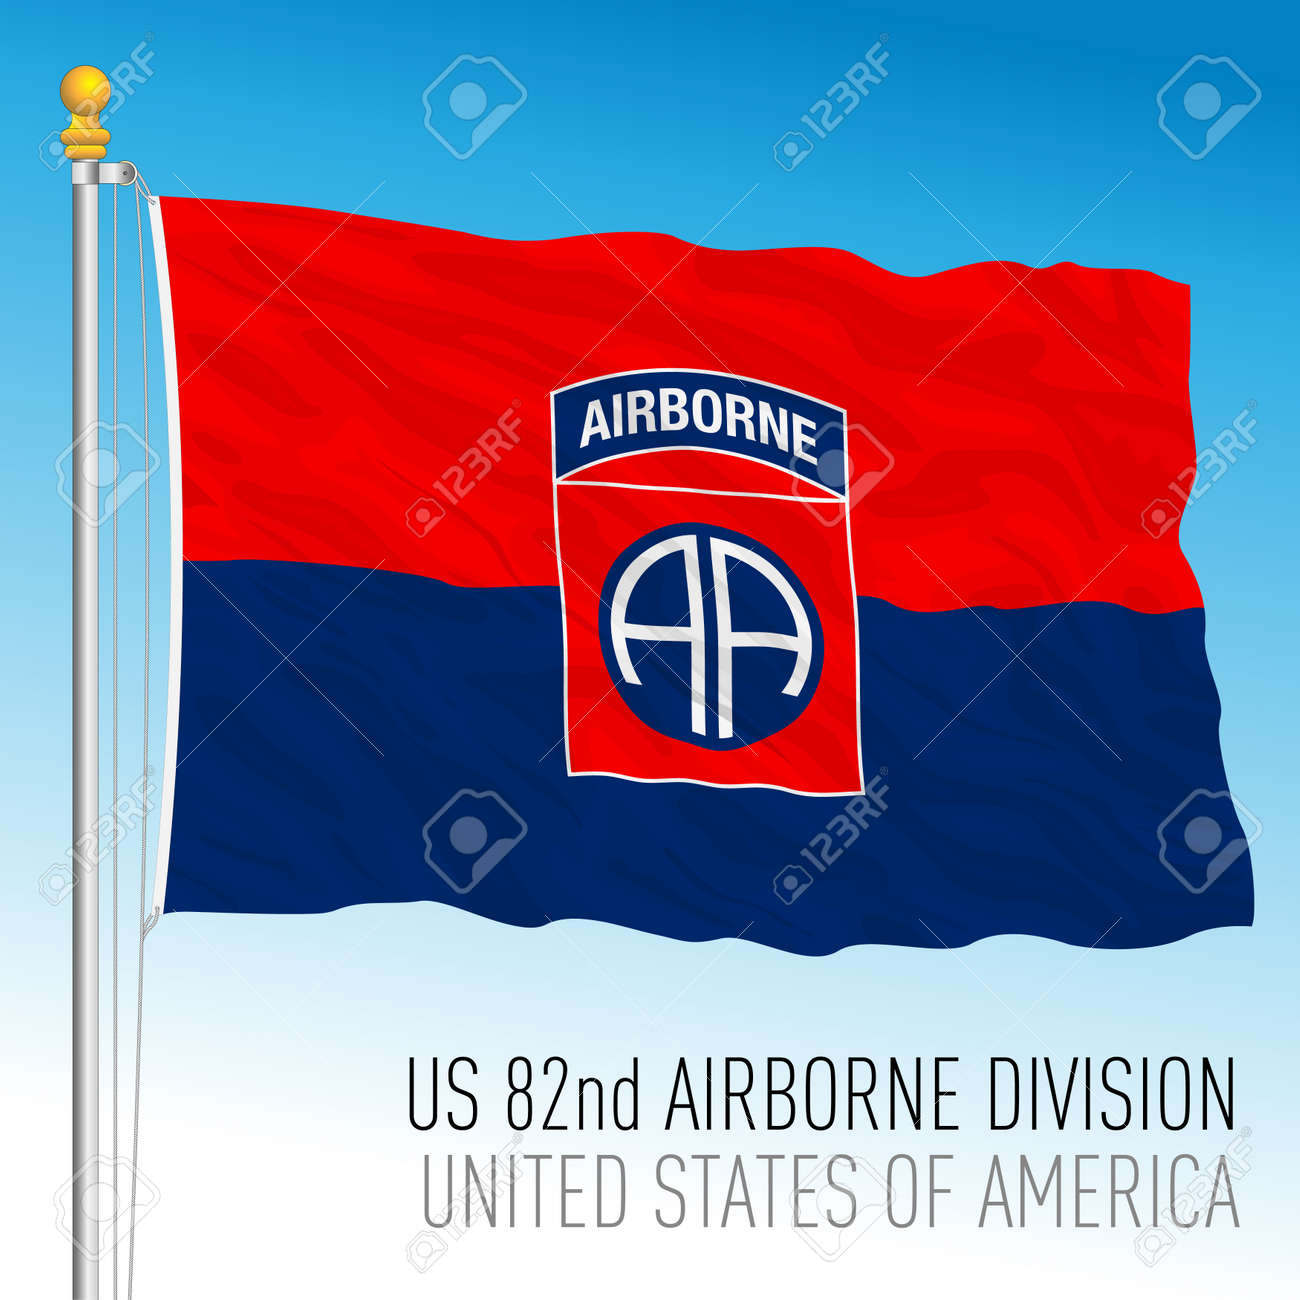 US 82nd Airborne Division flag, United States of America, vector illustration - 172711970